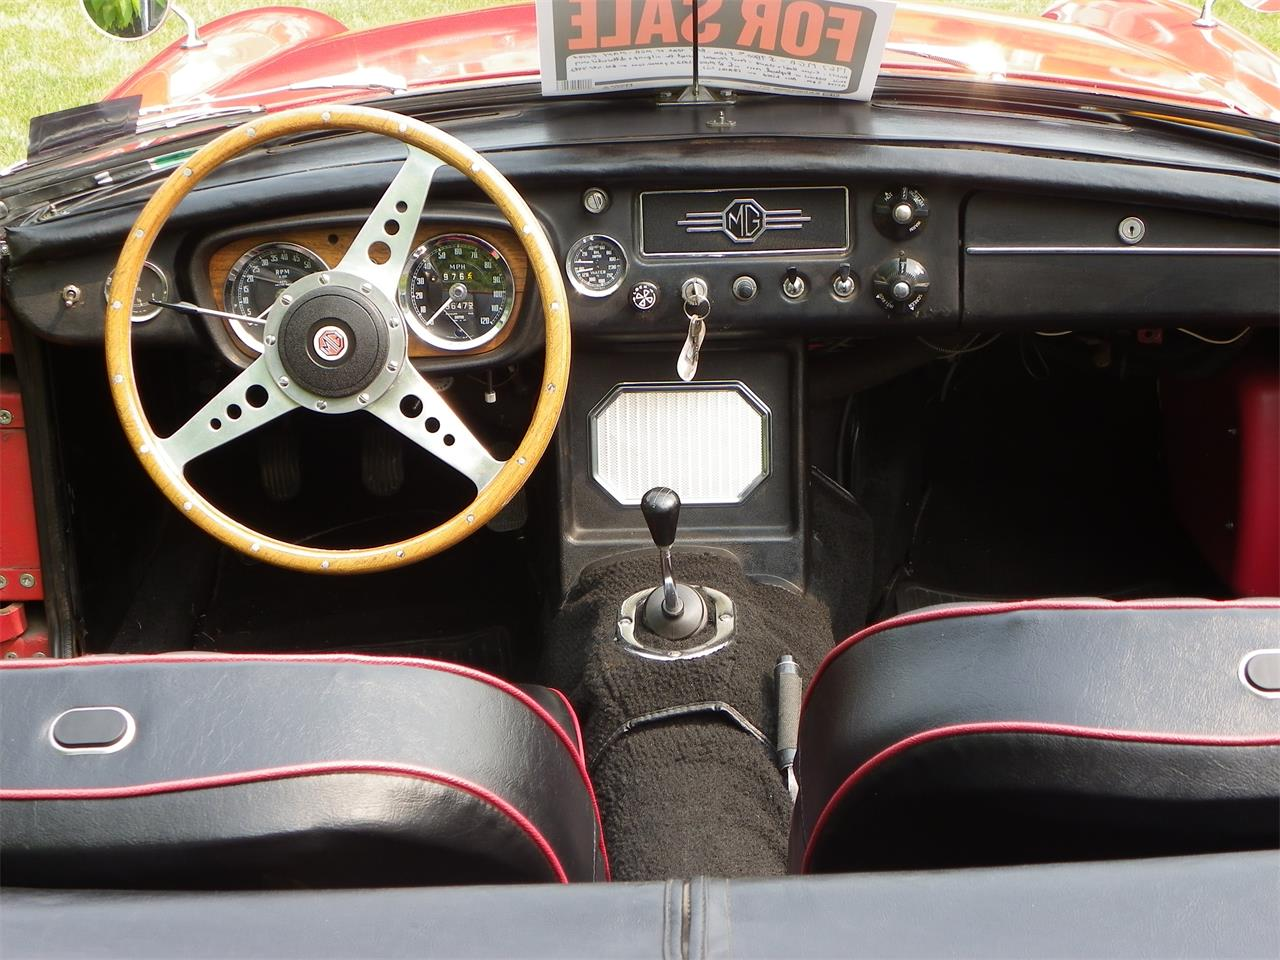 1967 MG MGB (CC-1232419) for sale in Chester, New Hampshire